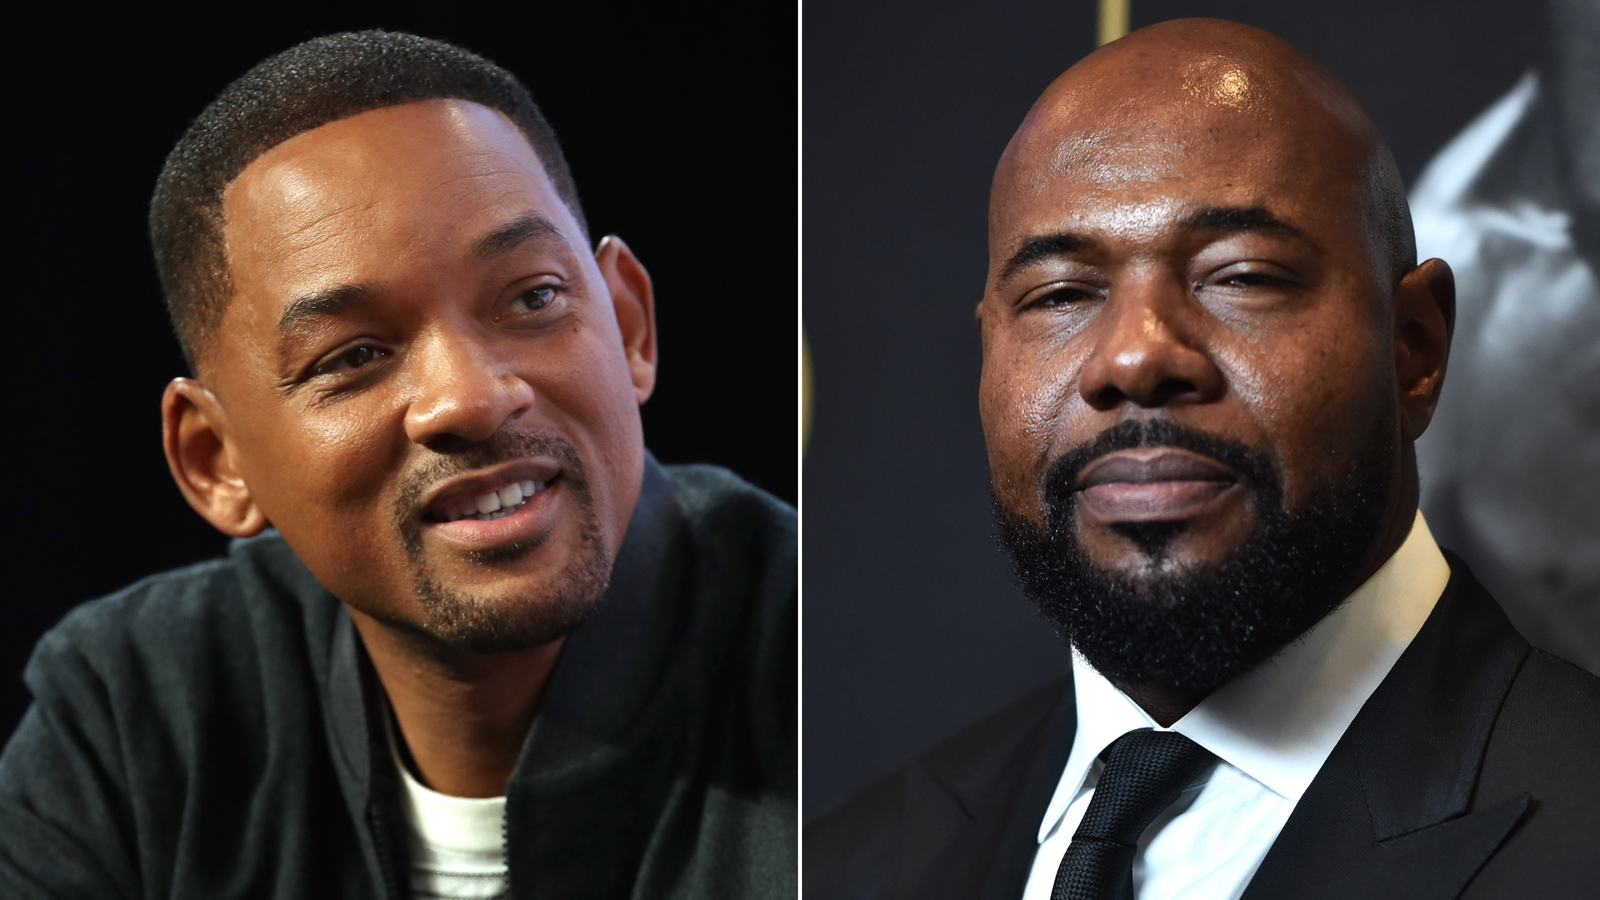 Will Smith and Antoine Fuqua pull 'Emancipation' production from Georgia